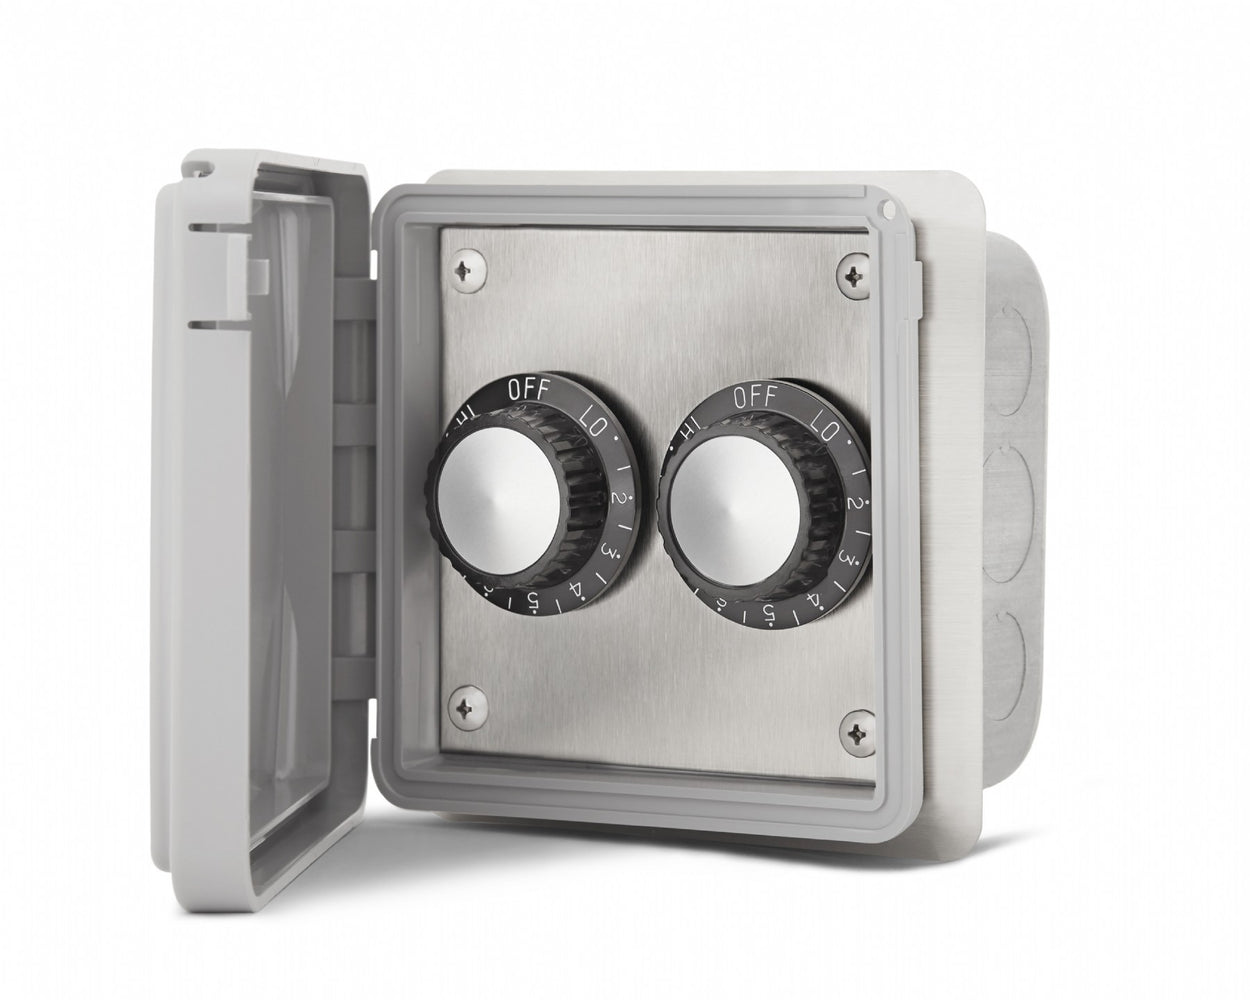 INFRATECH DUAL FLUSH MOUNT REGULATOR W/ WEATHER PROOF BOX